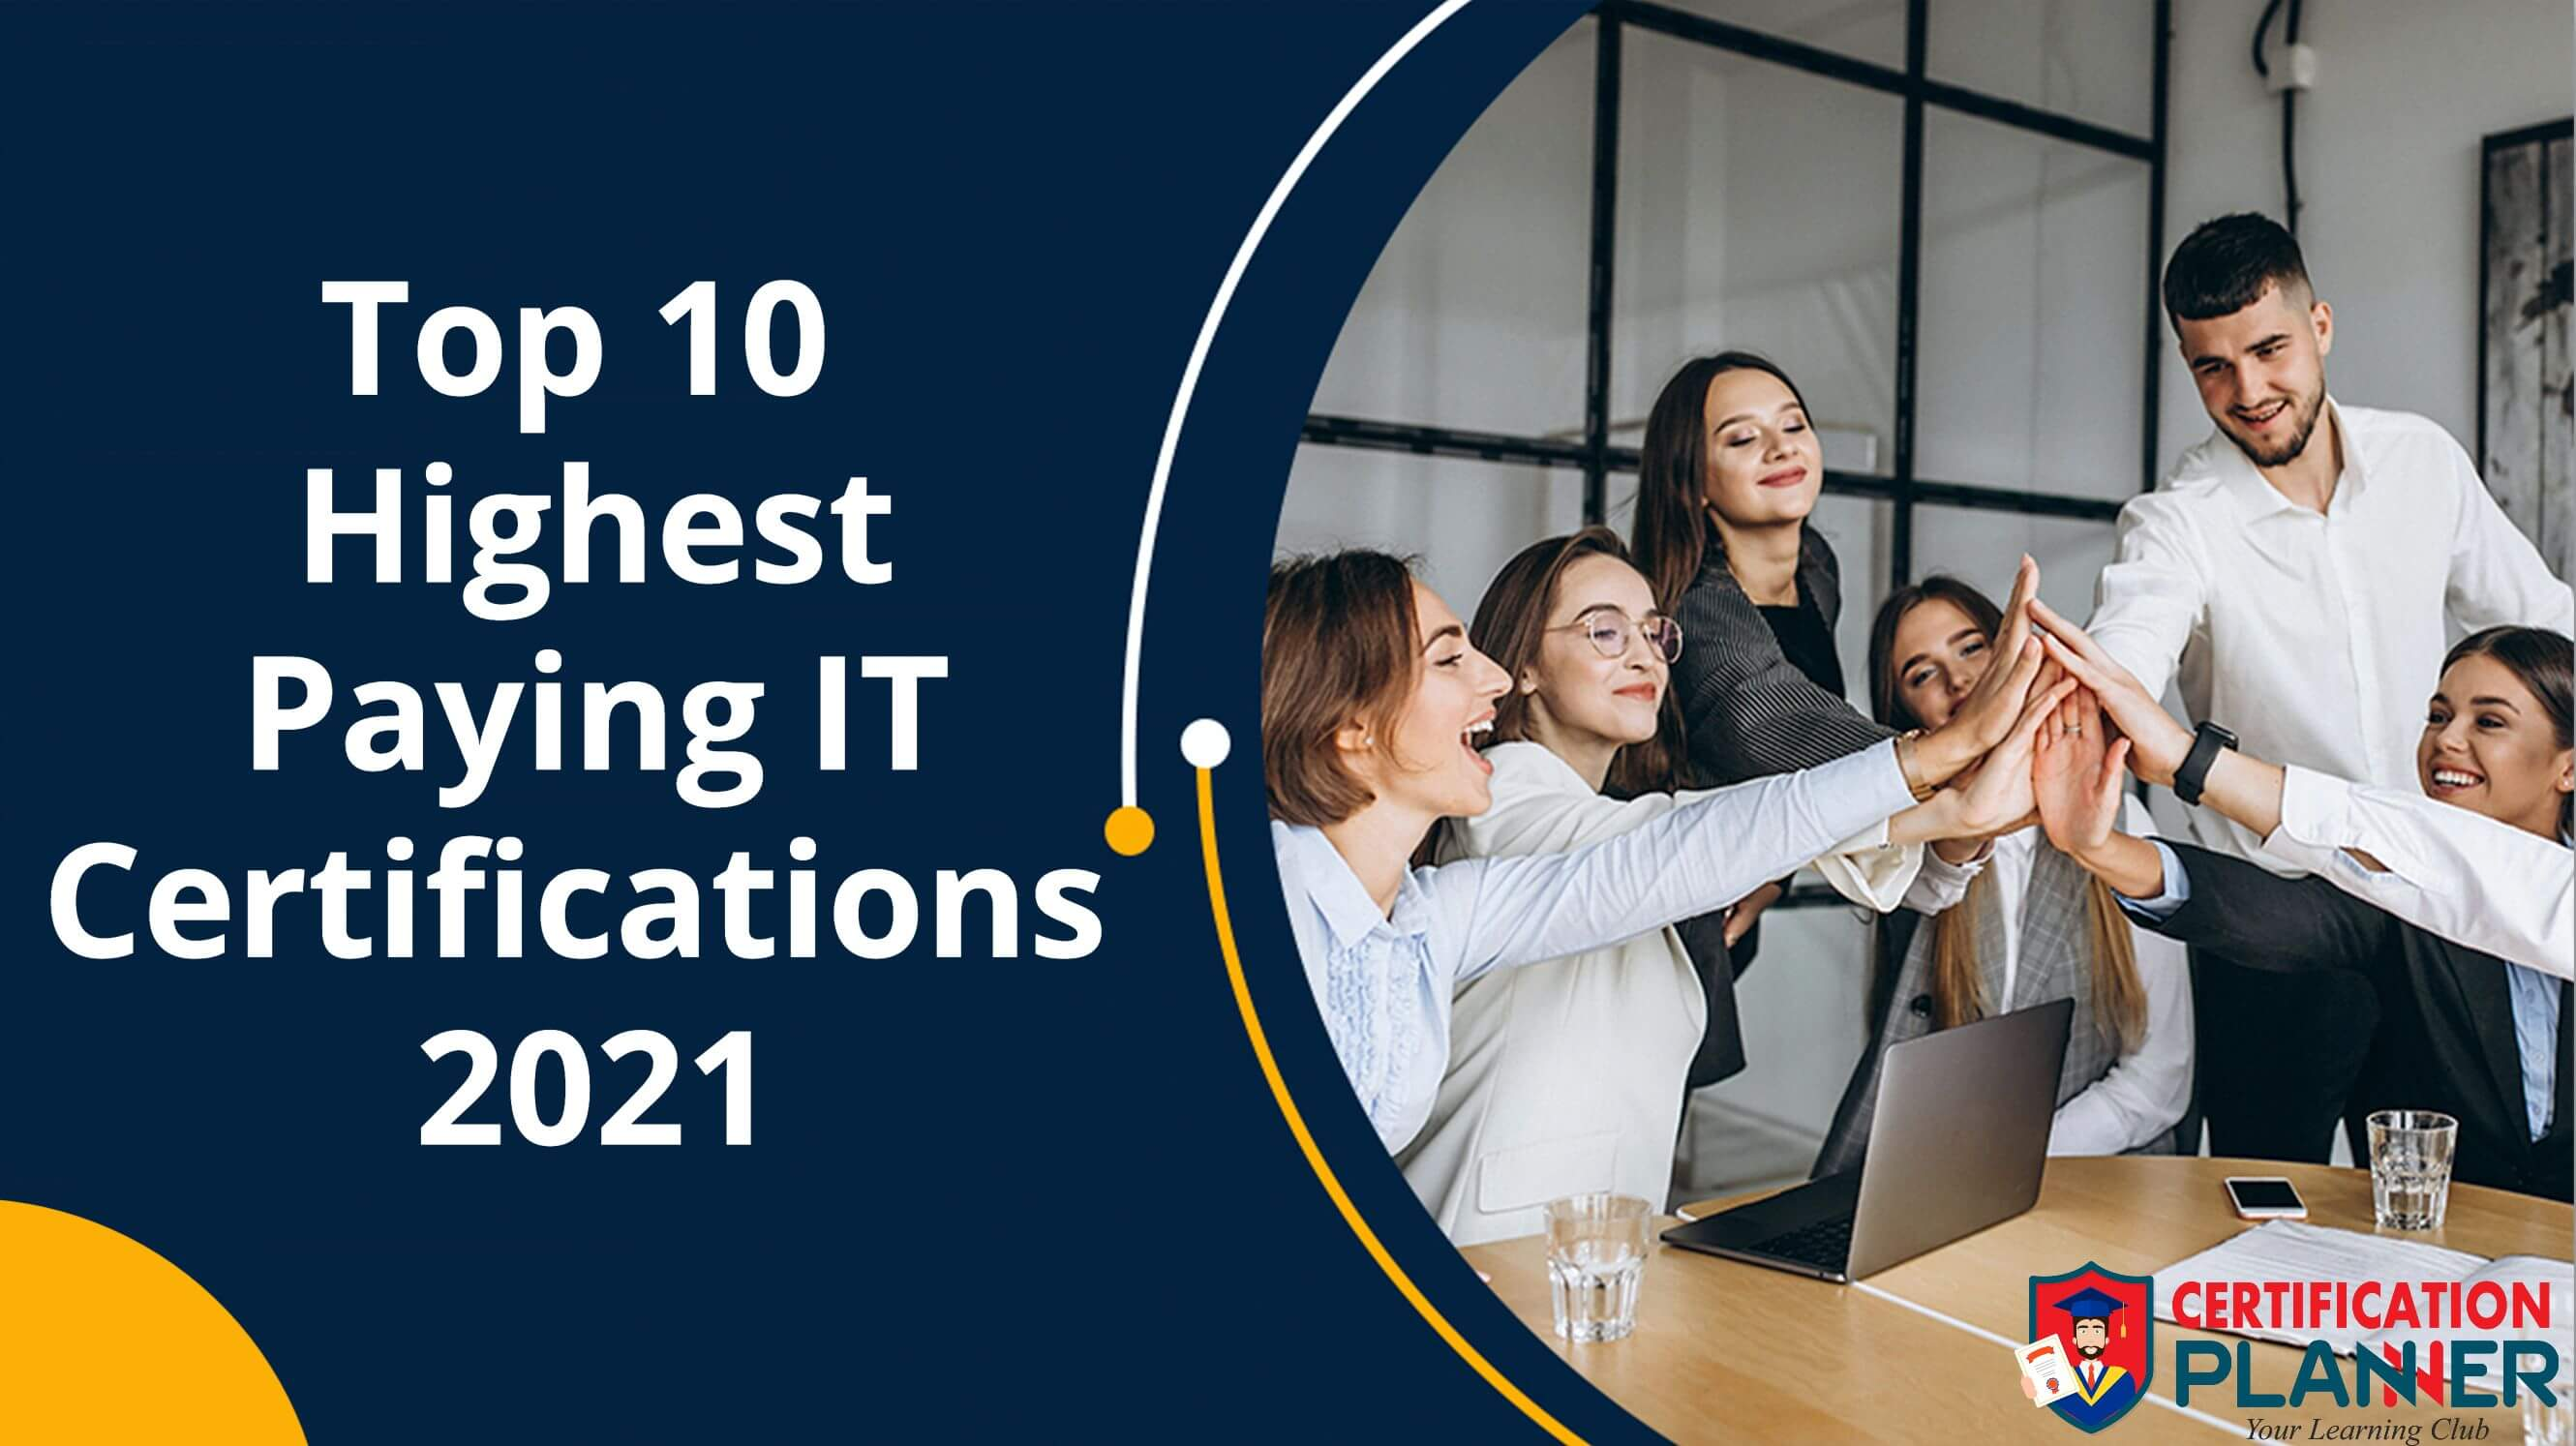 Top 10 Highest Paying IT Certifications for 2021